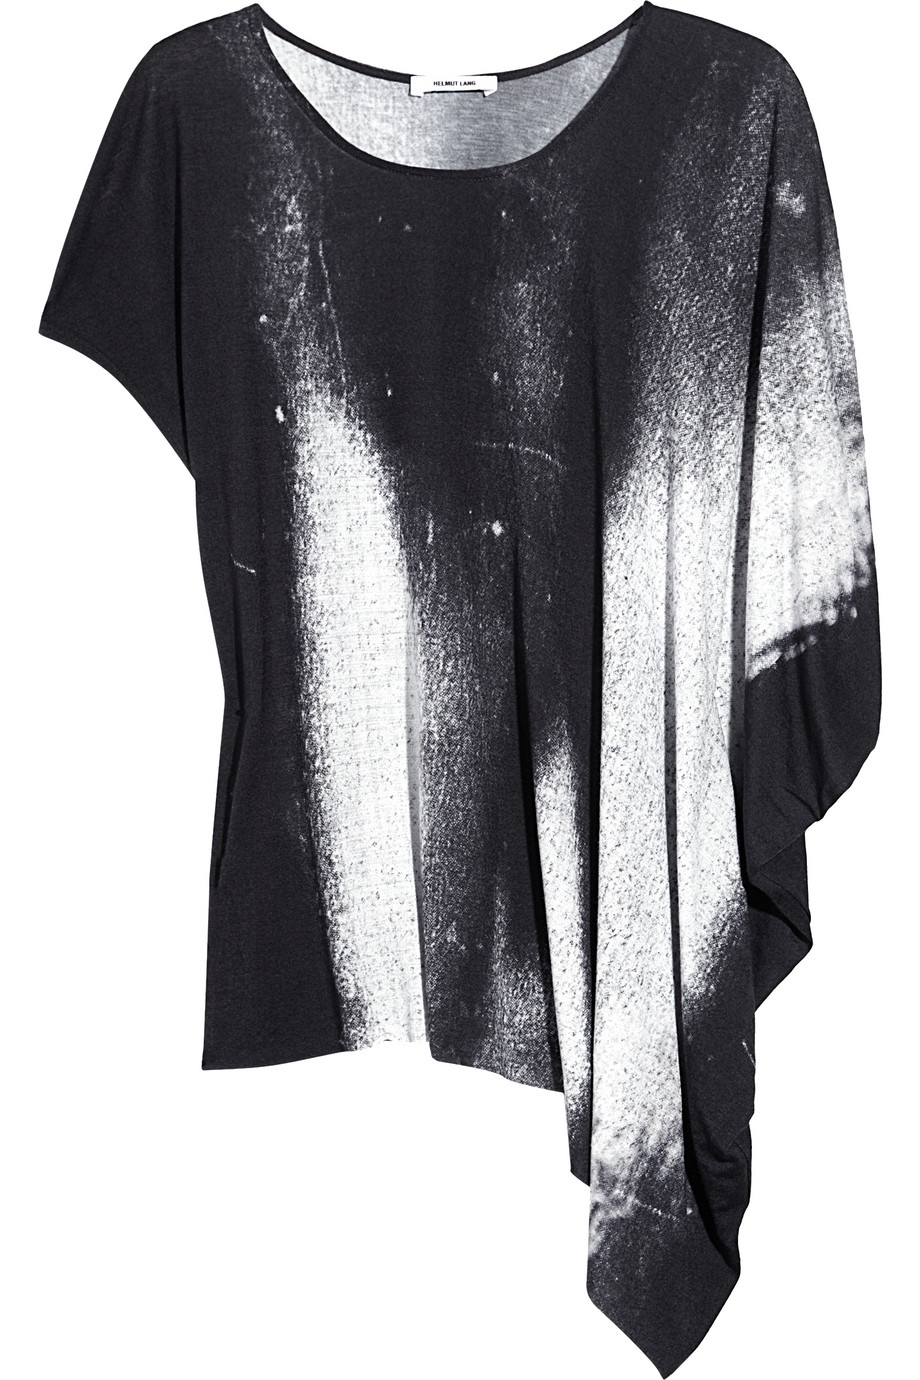 helmut lang oversized printed jersey t shirt in gray lyst. Black Bedroom Furniture Sets. Home Design Ideas